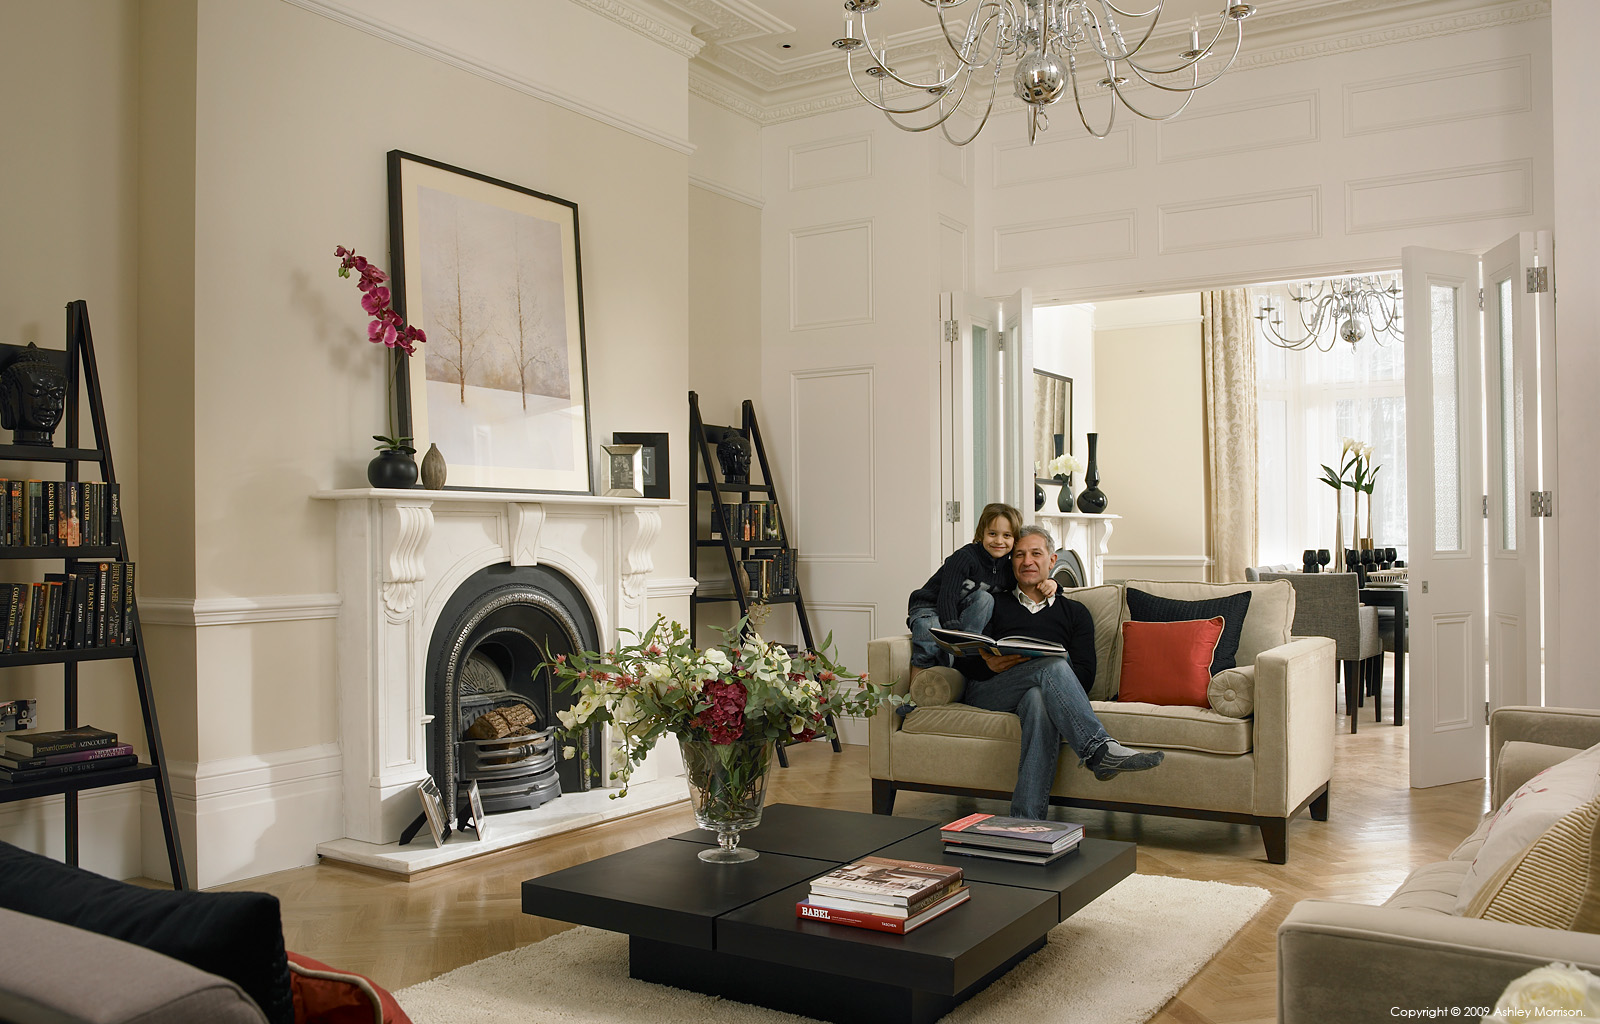 Kaveh Mobasheri & his son in the sitting room of their semi-detached house in the Camden area of London by Ashley Morrison.